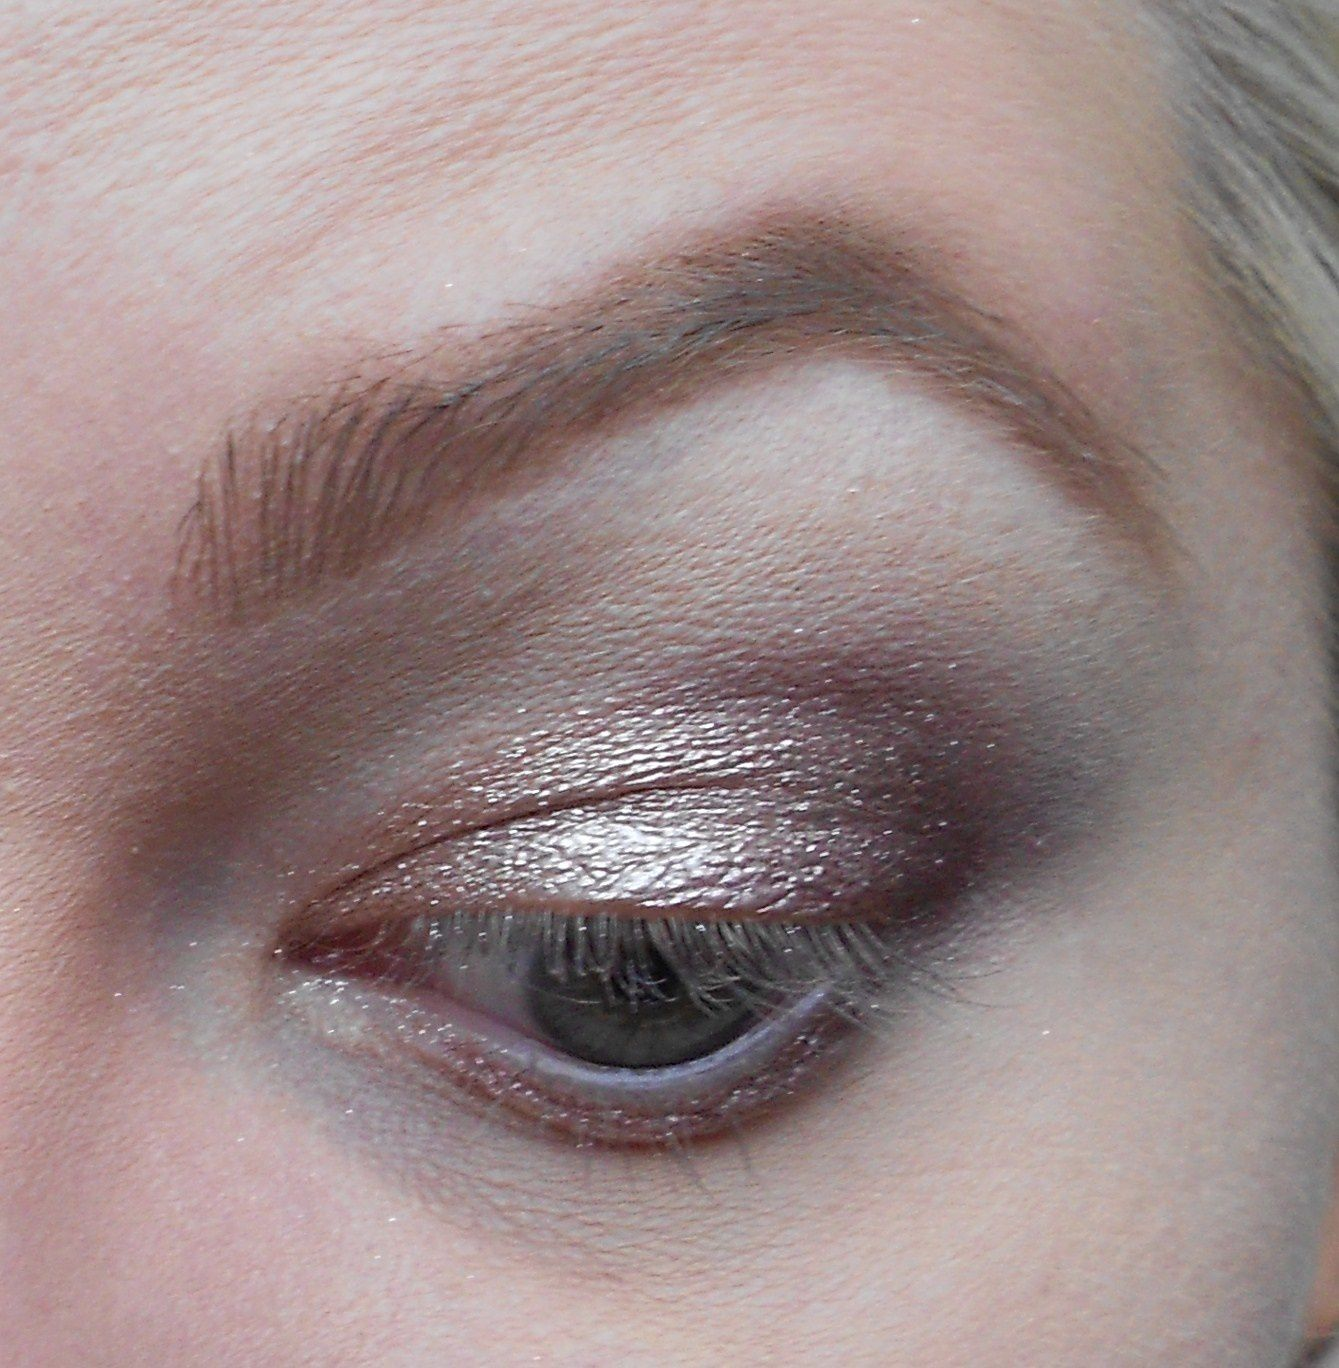 Avec un pinceau plat humidifié on prend le Fard Long Lasting Wet & Dry use eyeshadow n°200, et on l'applique sur la paupière mobile.